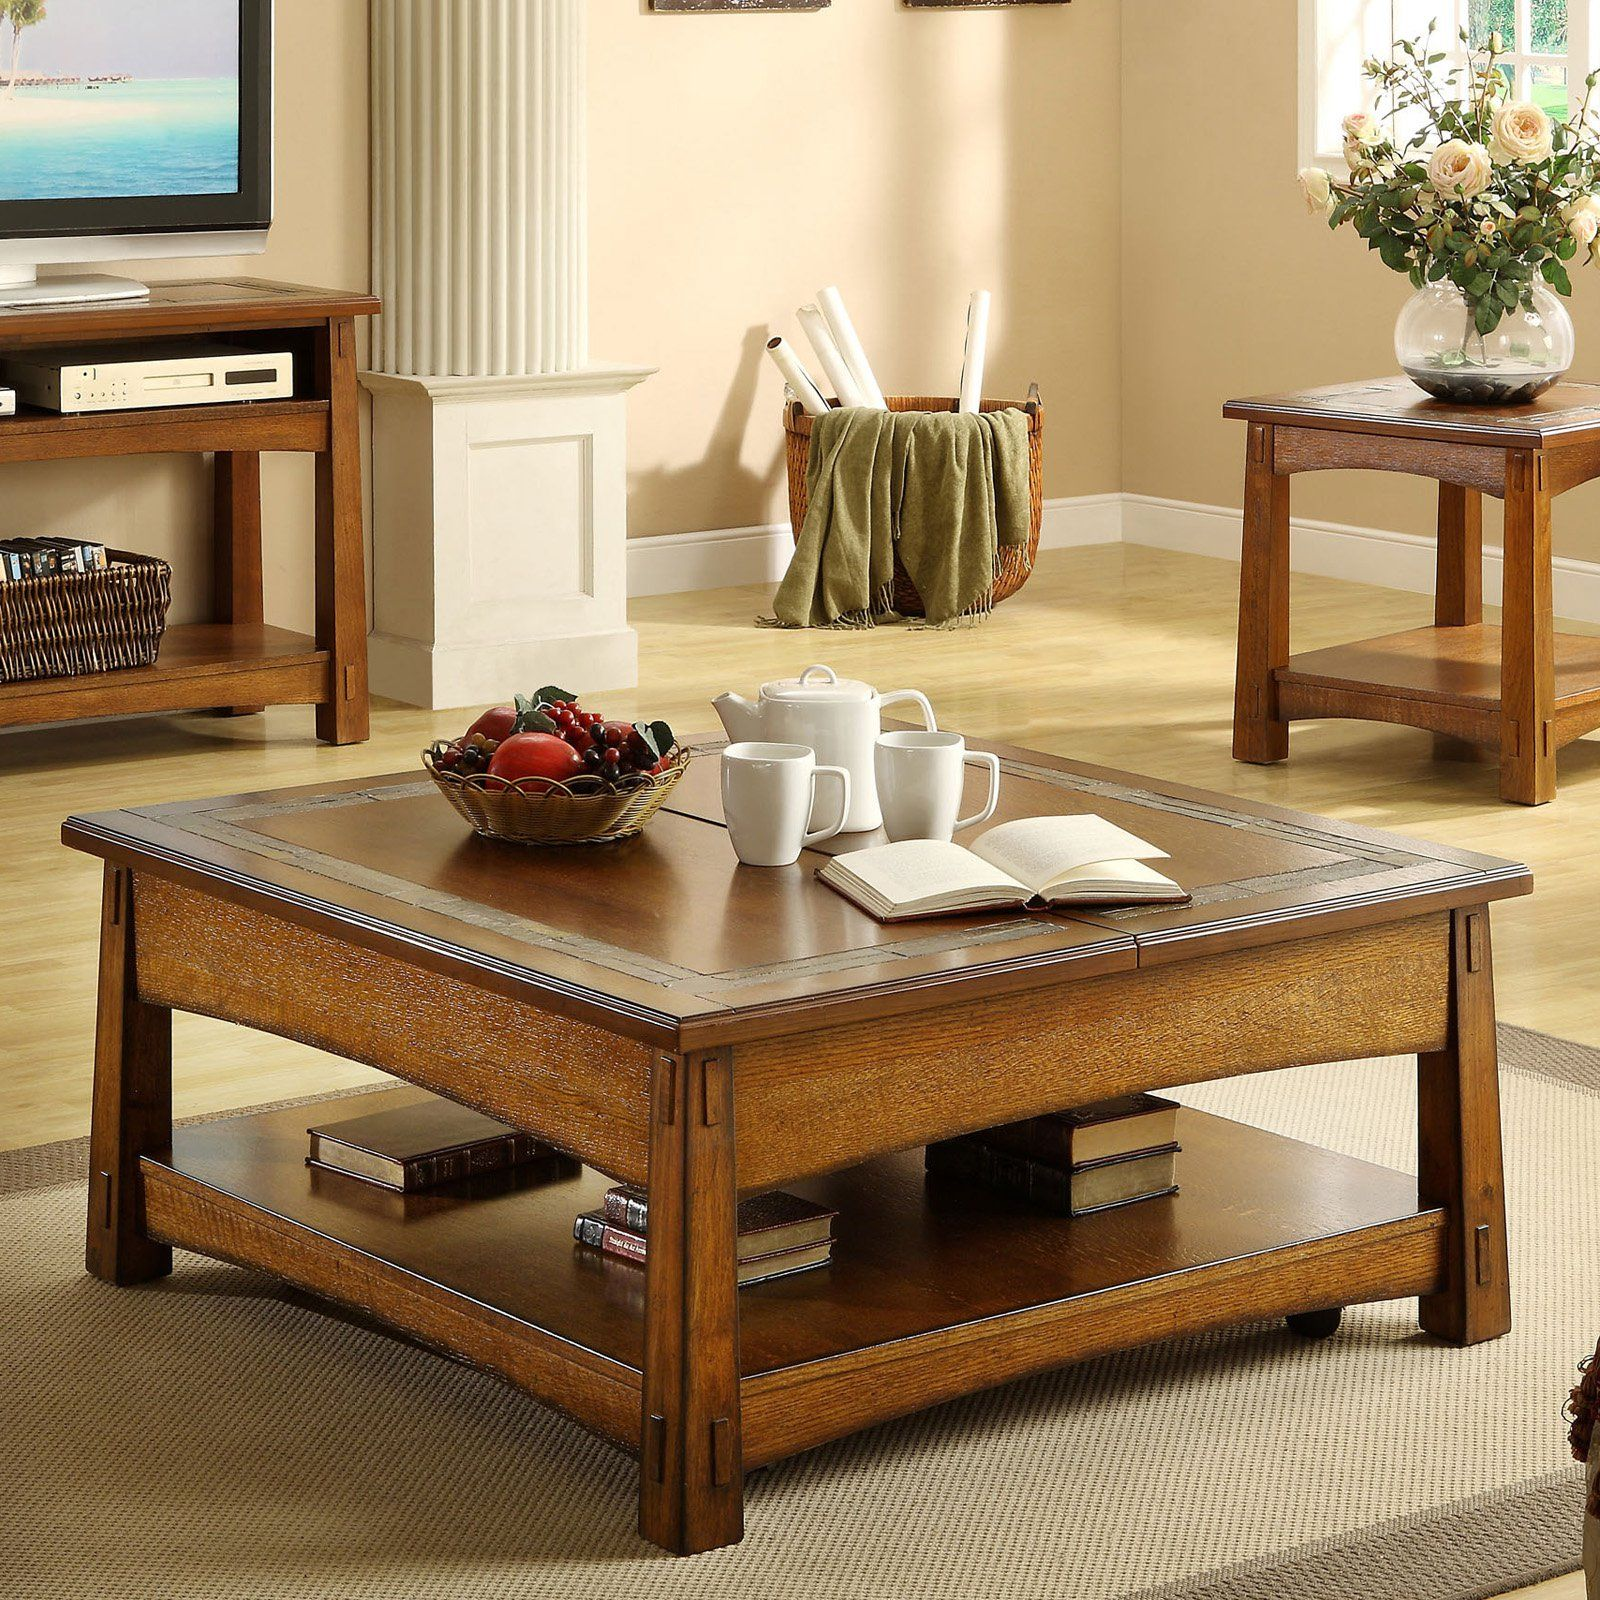 Have To Have It Riverside Craftsman Home Square Lift Top Cocktail Table Americana Oak Living Room Coffee Table Coffee Table Living Room Furniture Tables